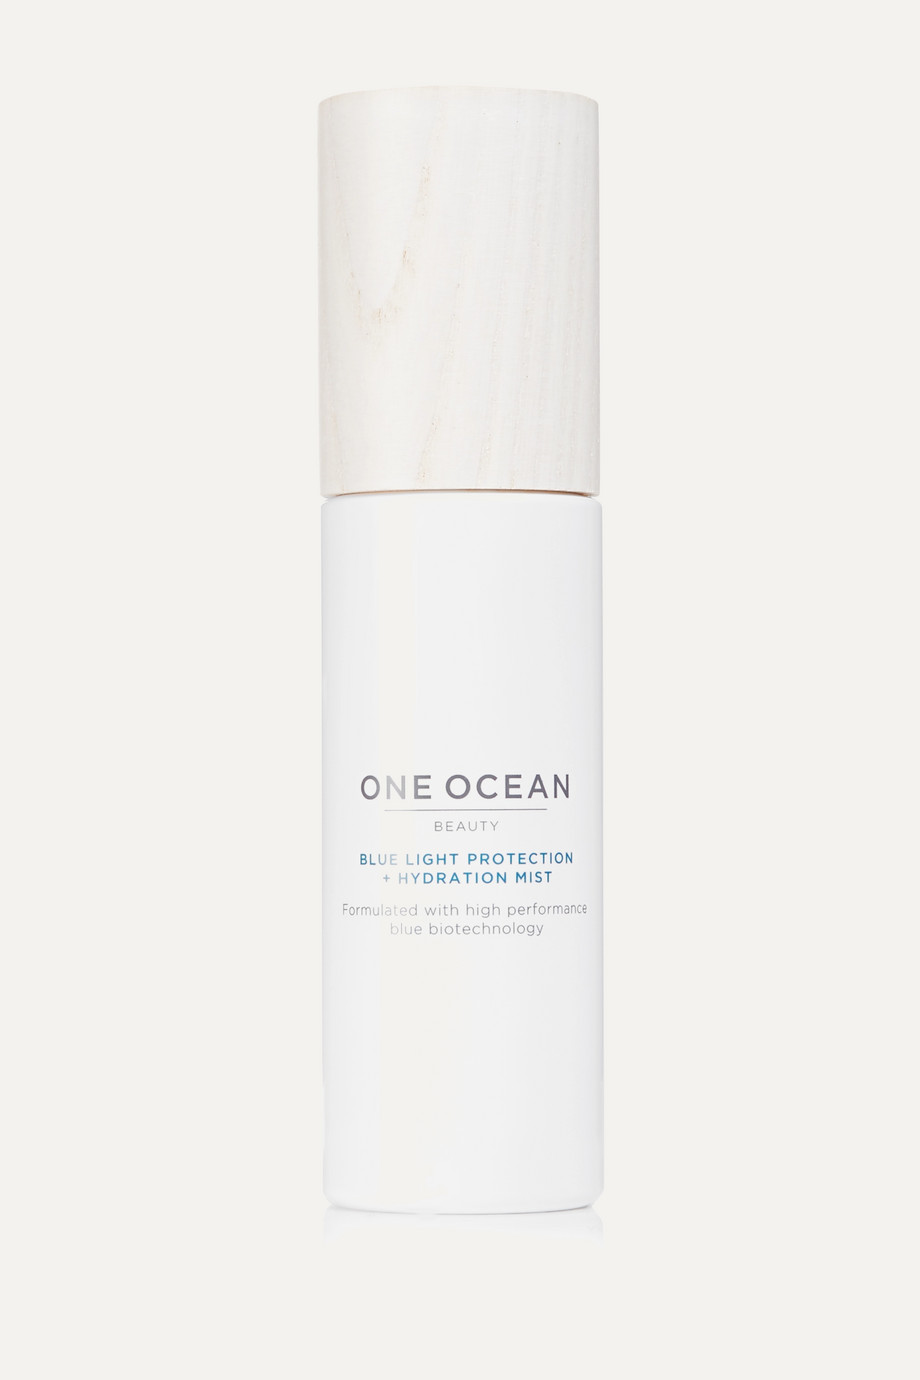 One Ocean Beauty Blue Light Protection + Hydration Mist, 100ml